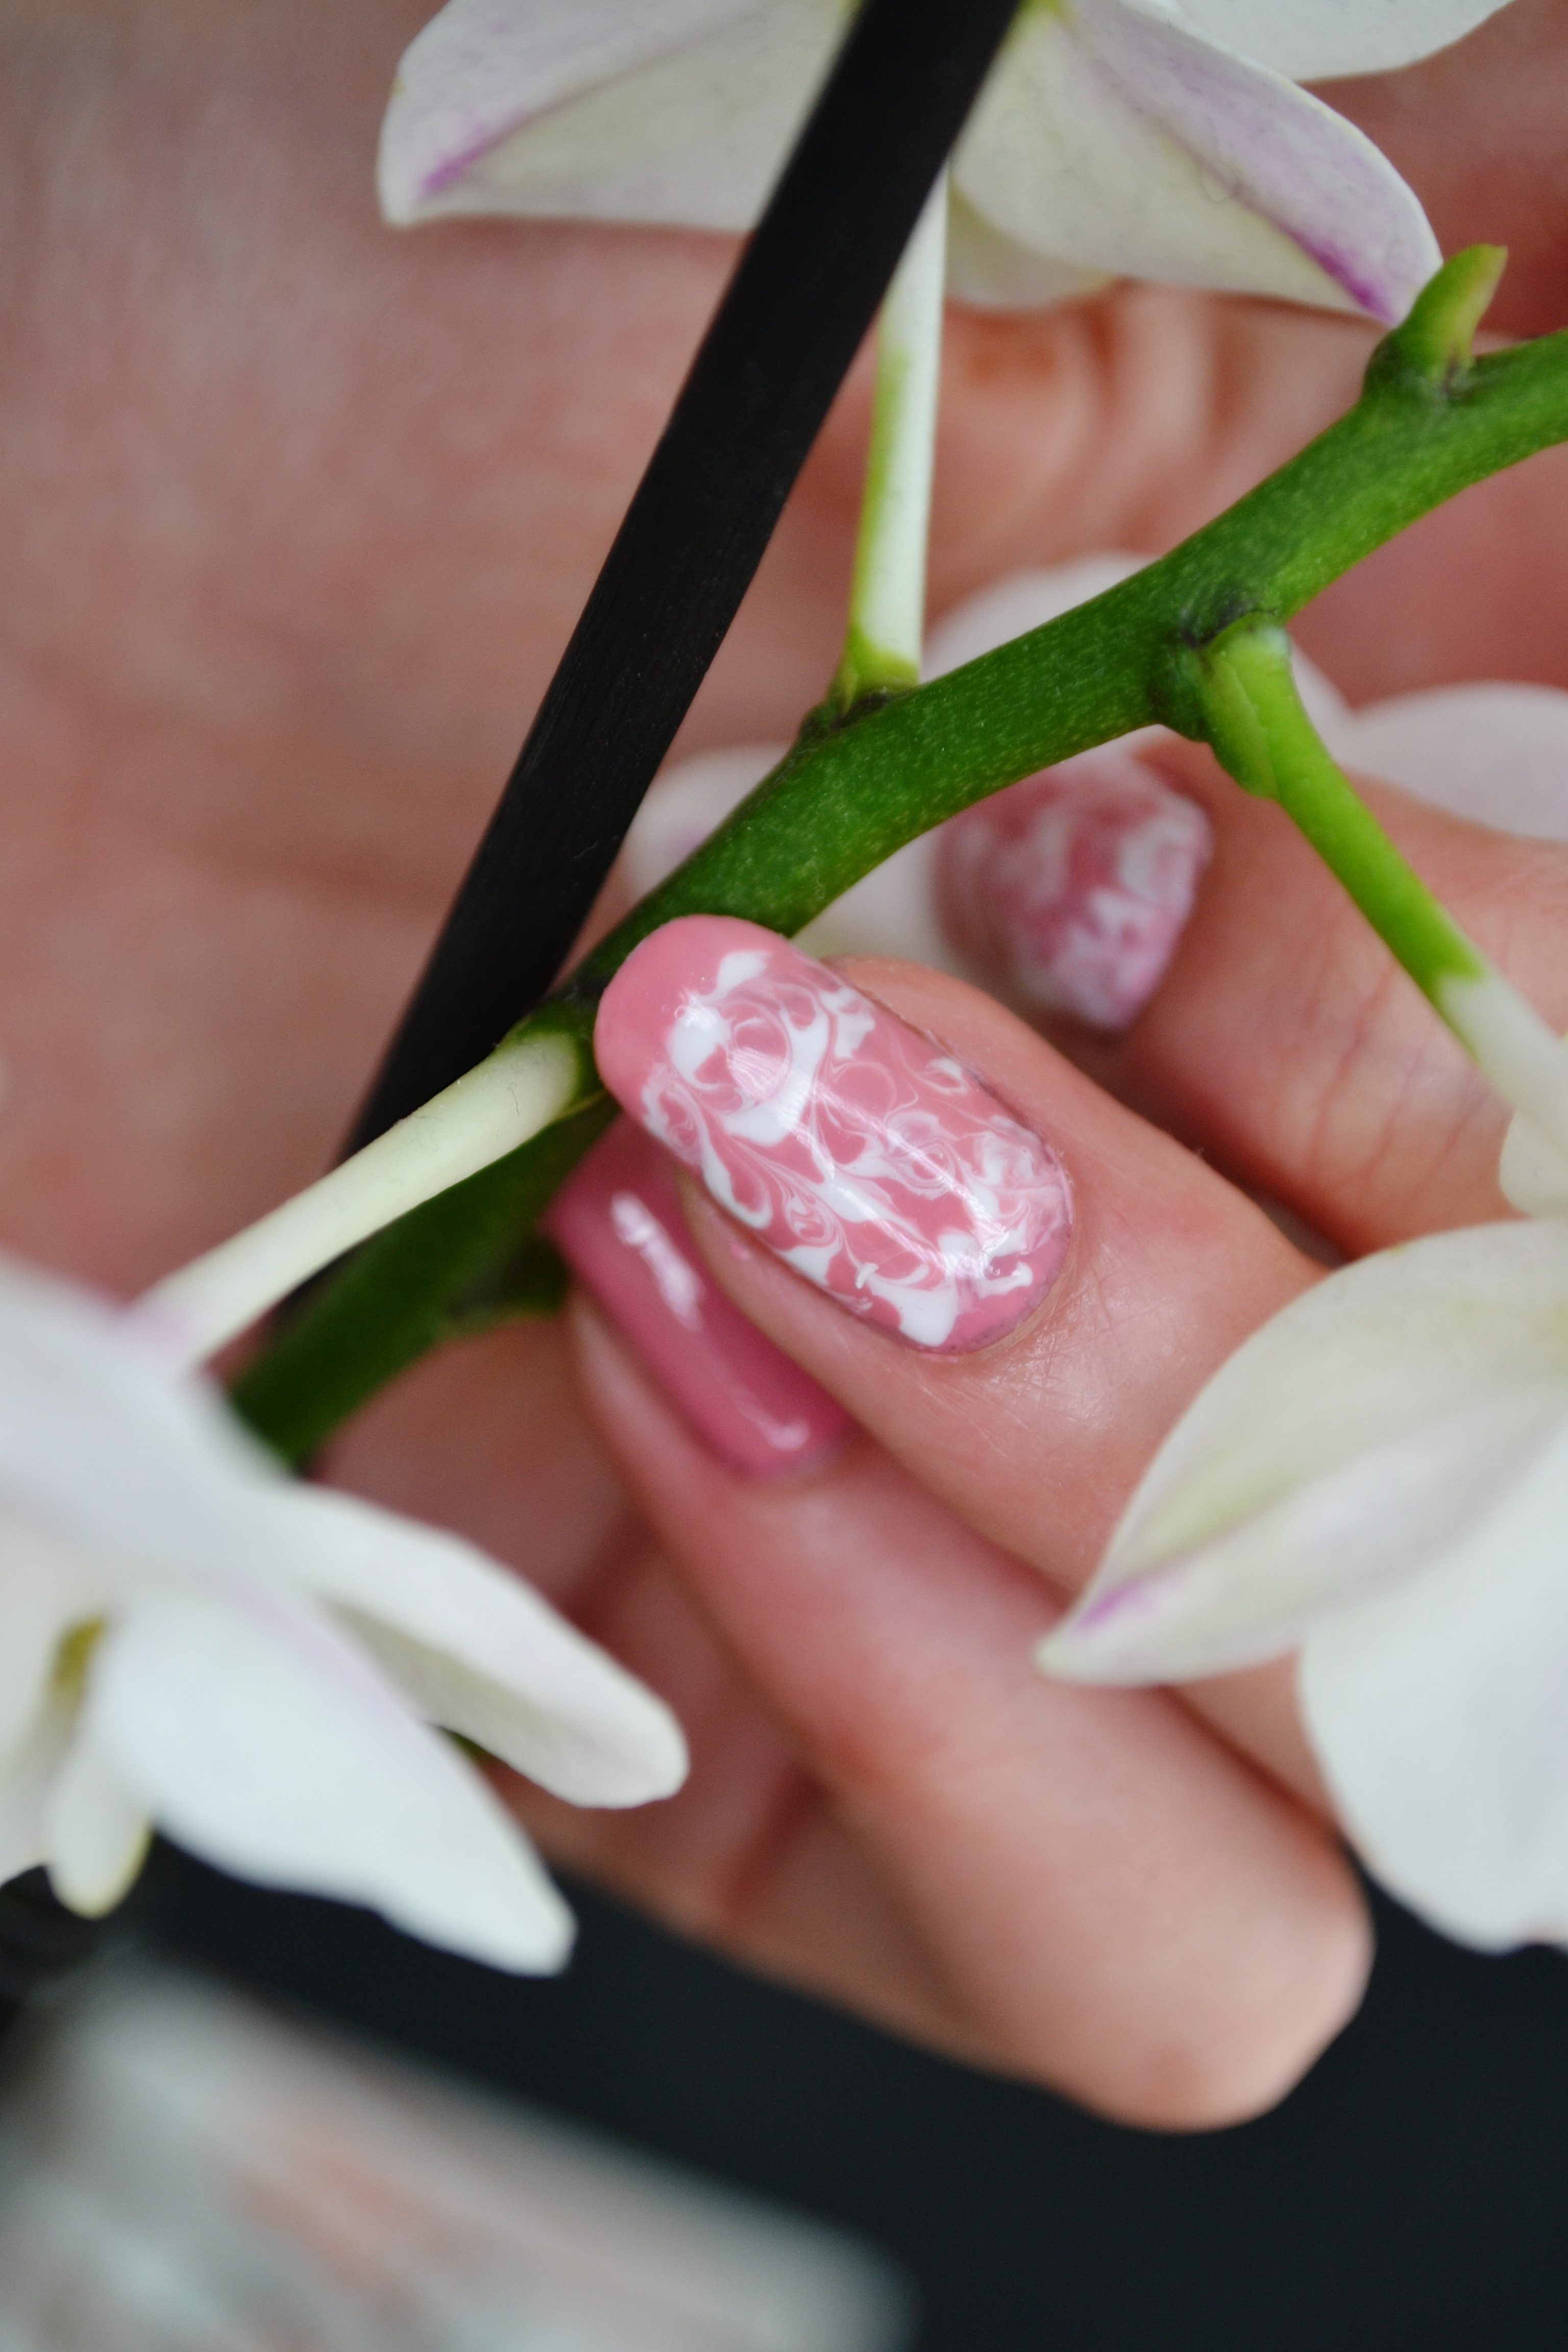 Marble nail art tutorialcnd shellac beauty conspirator nail art design is created using cnd shellac base coat cnd shellac top coat cnd shellac polish rose bud msk shellac polish in white prinsesfo Choice Image